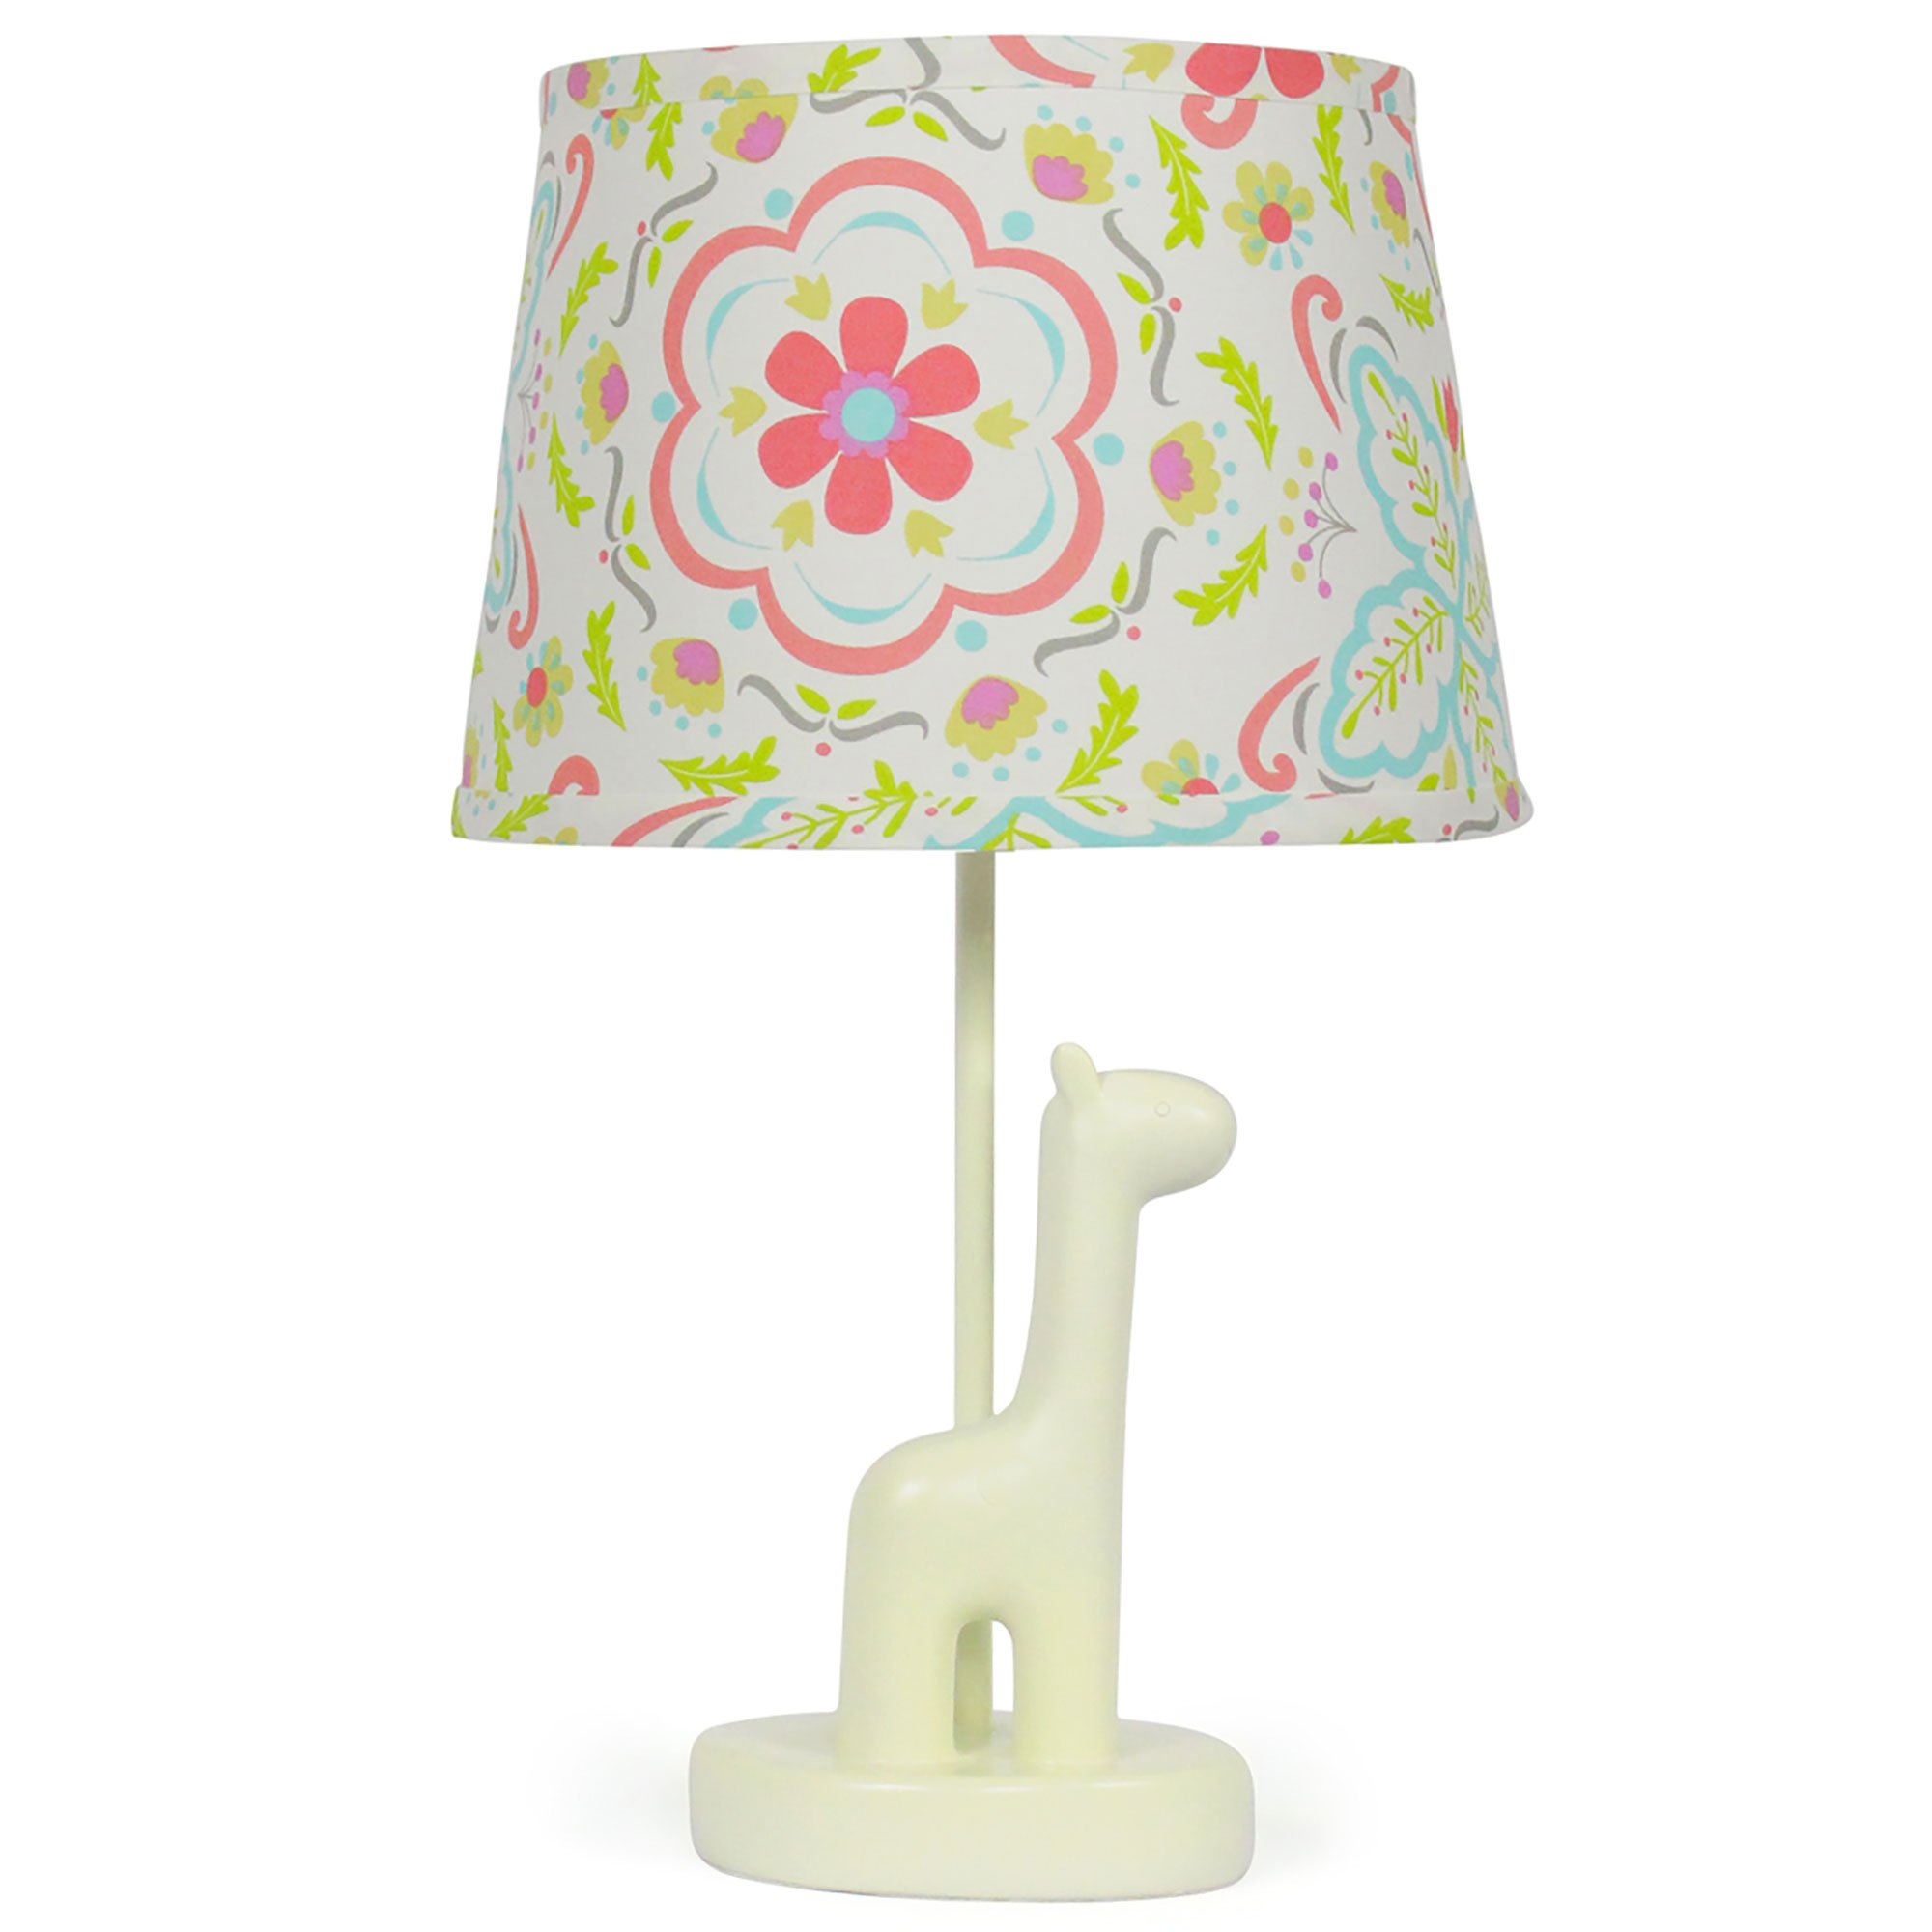 Coral Floral Nursery Lamp Shade with White Giraffe Base, CFL Bulb Included